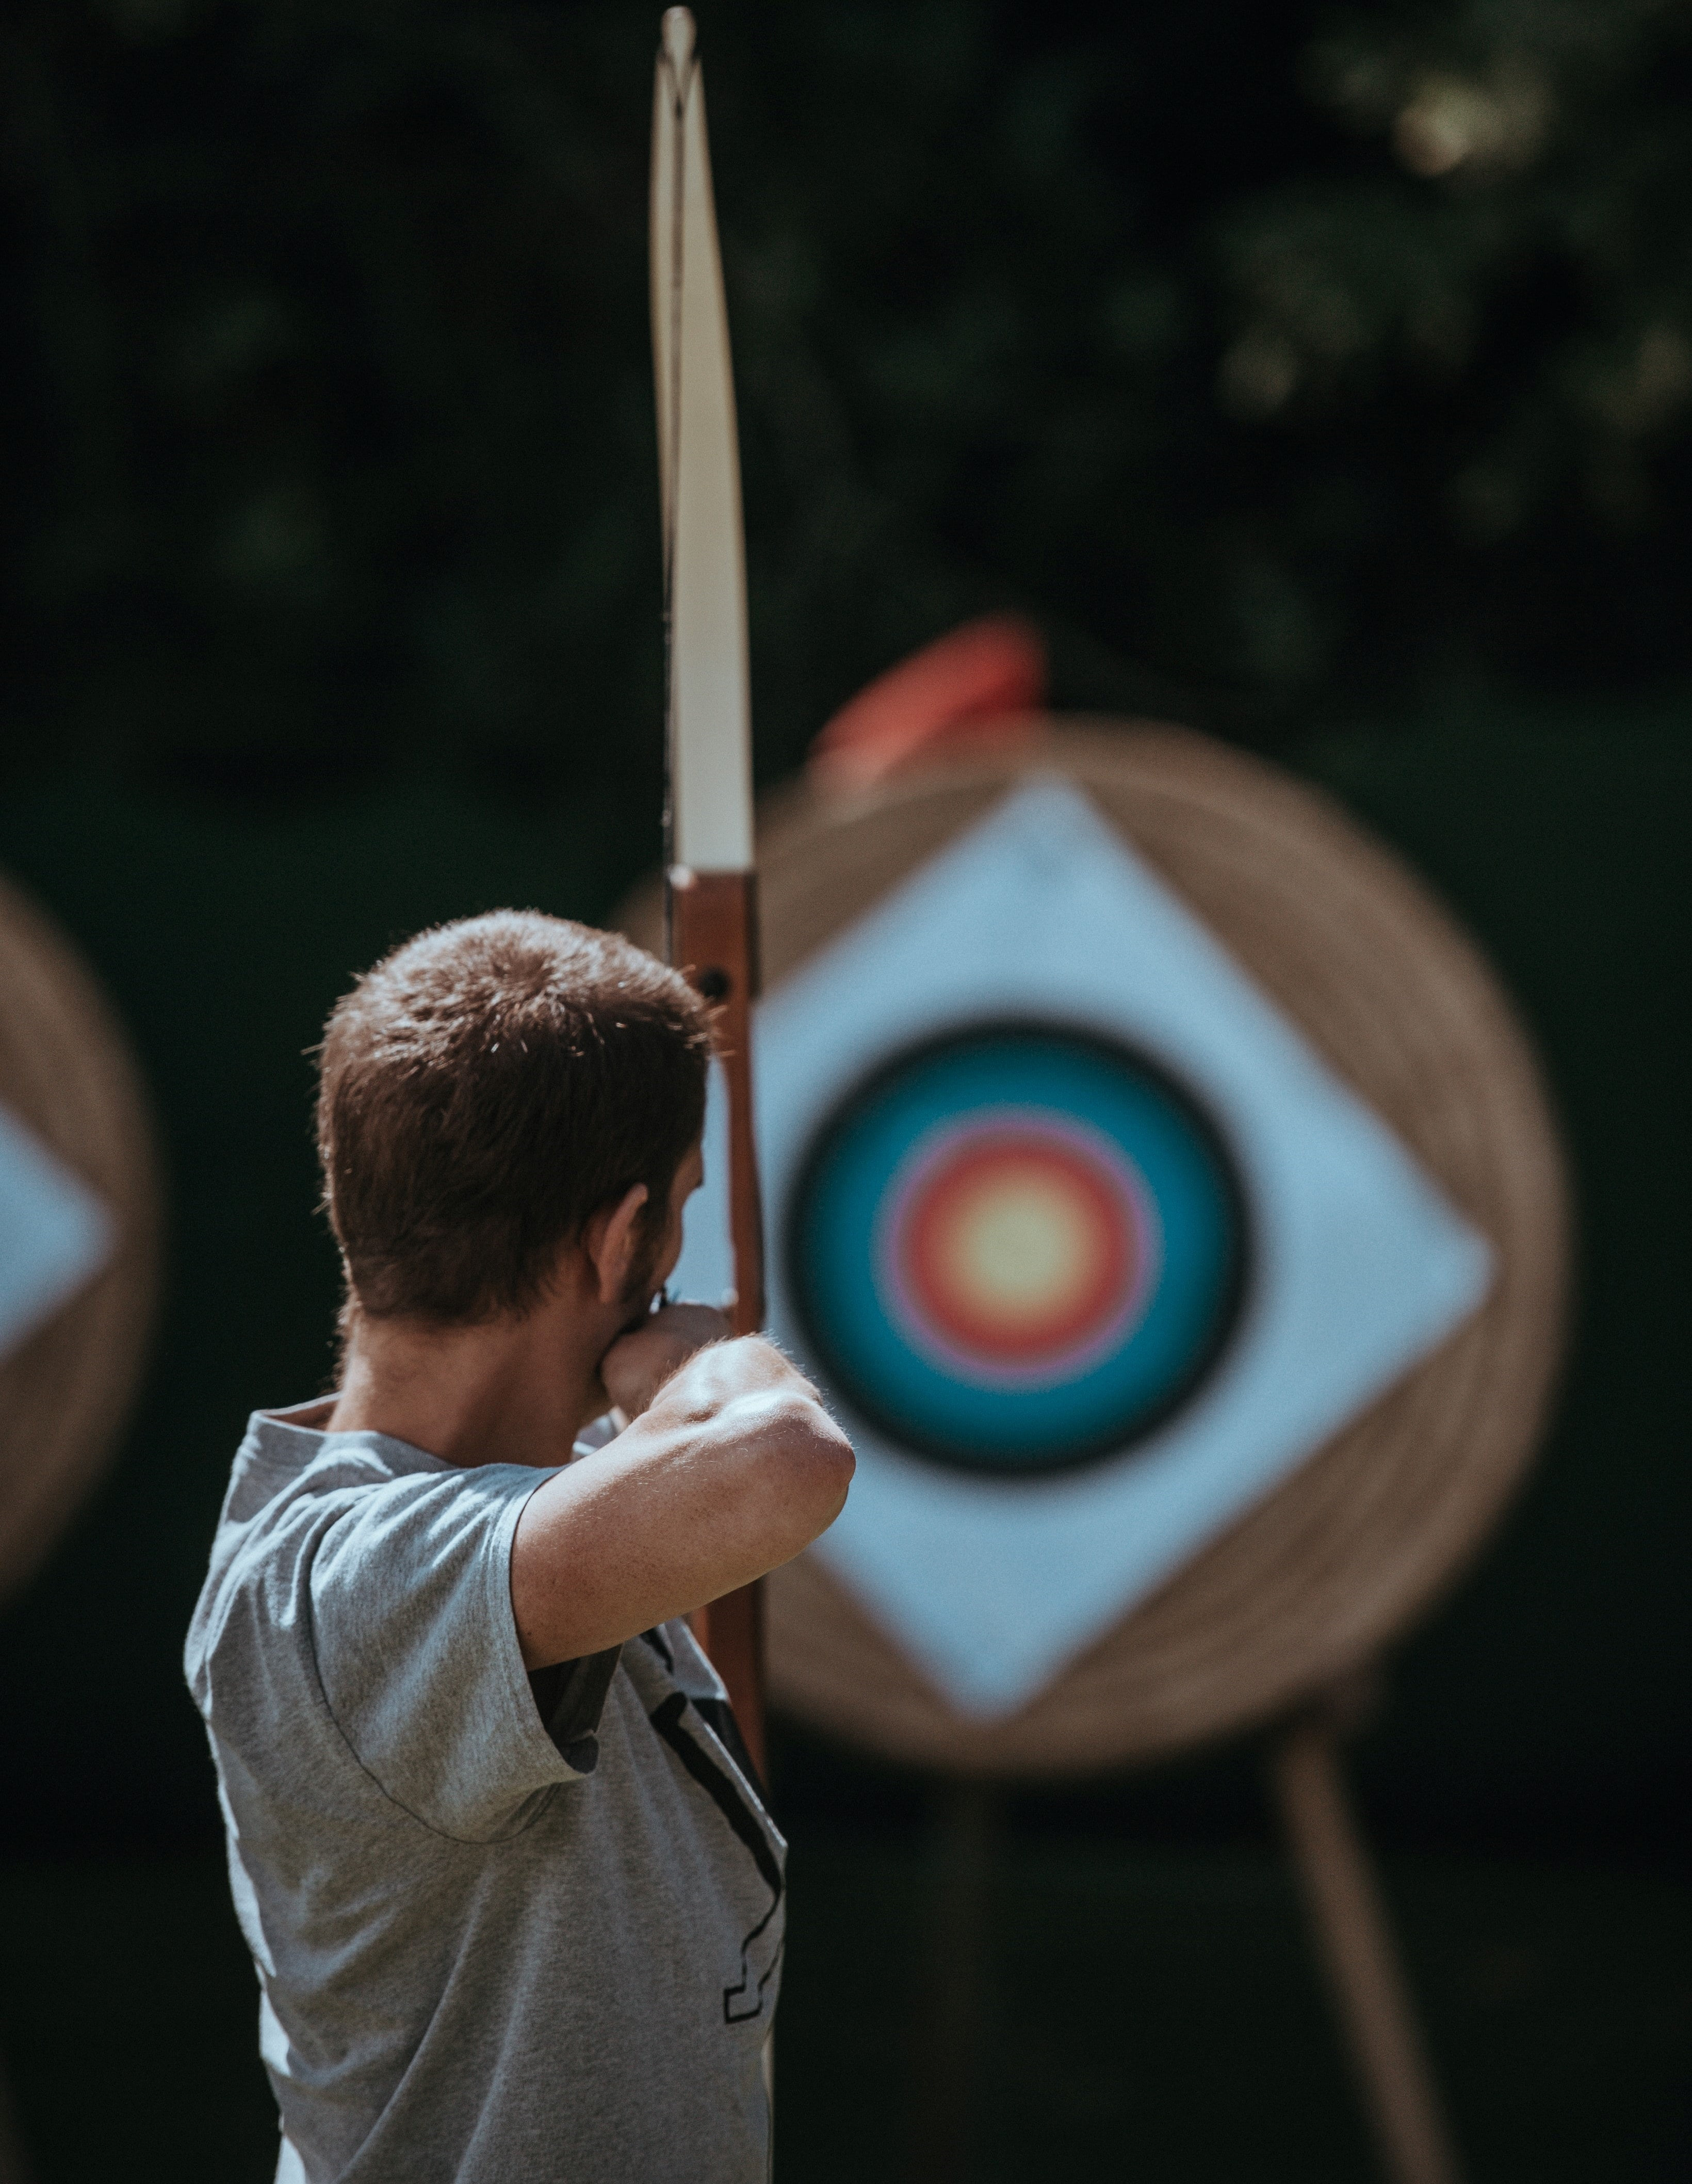 Setting your target GRE score